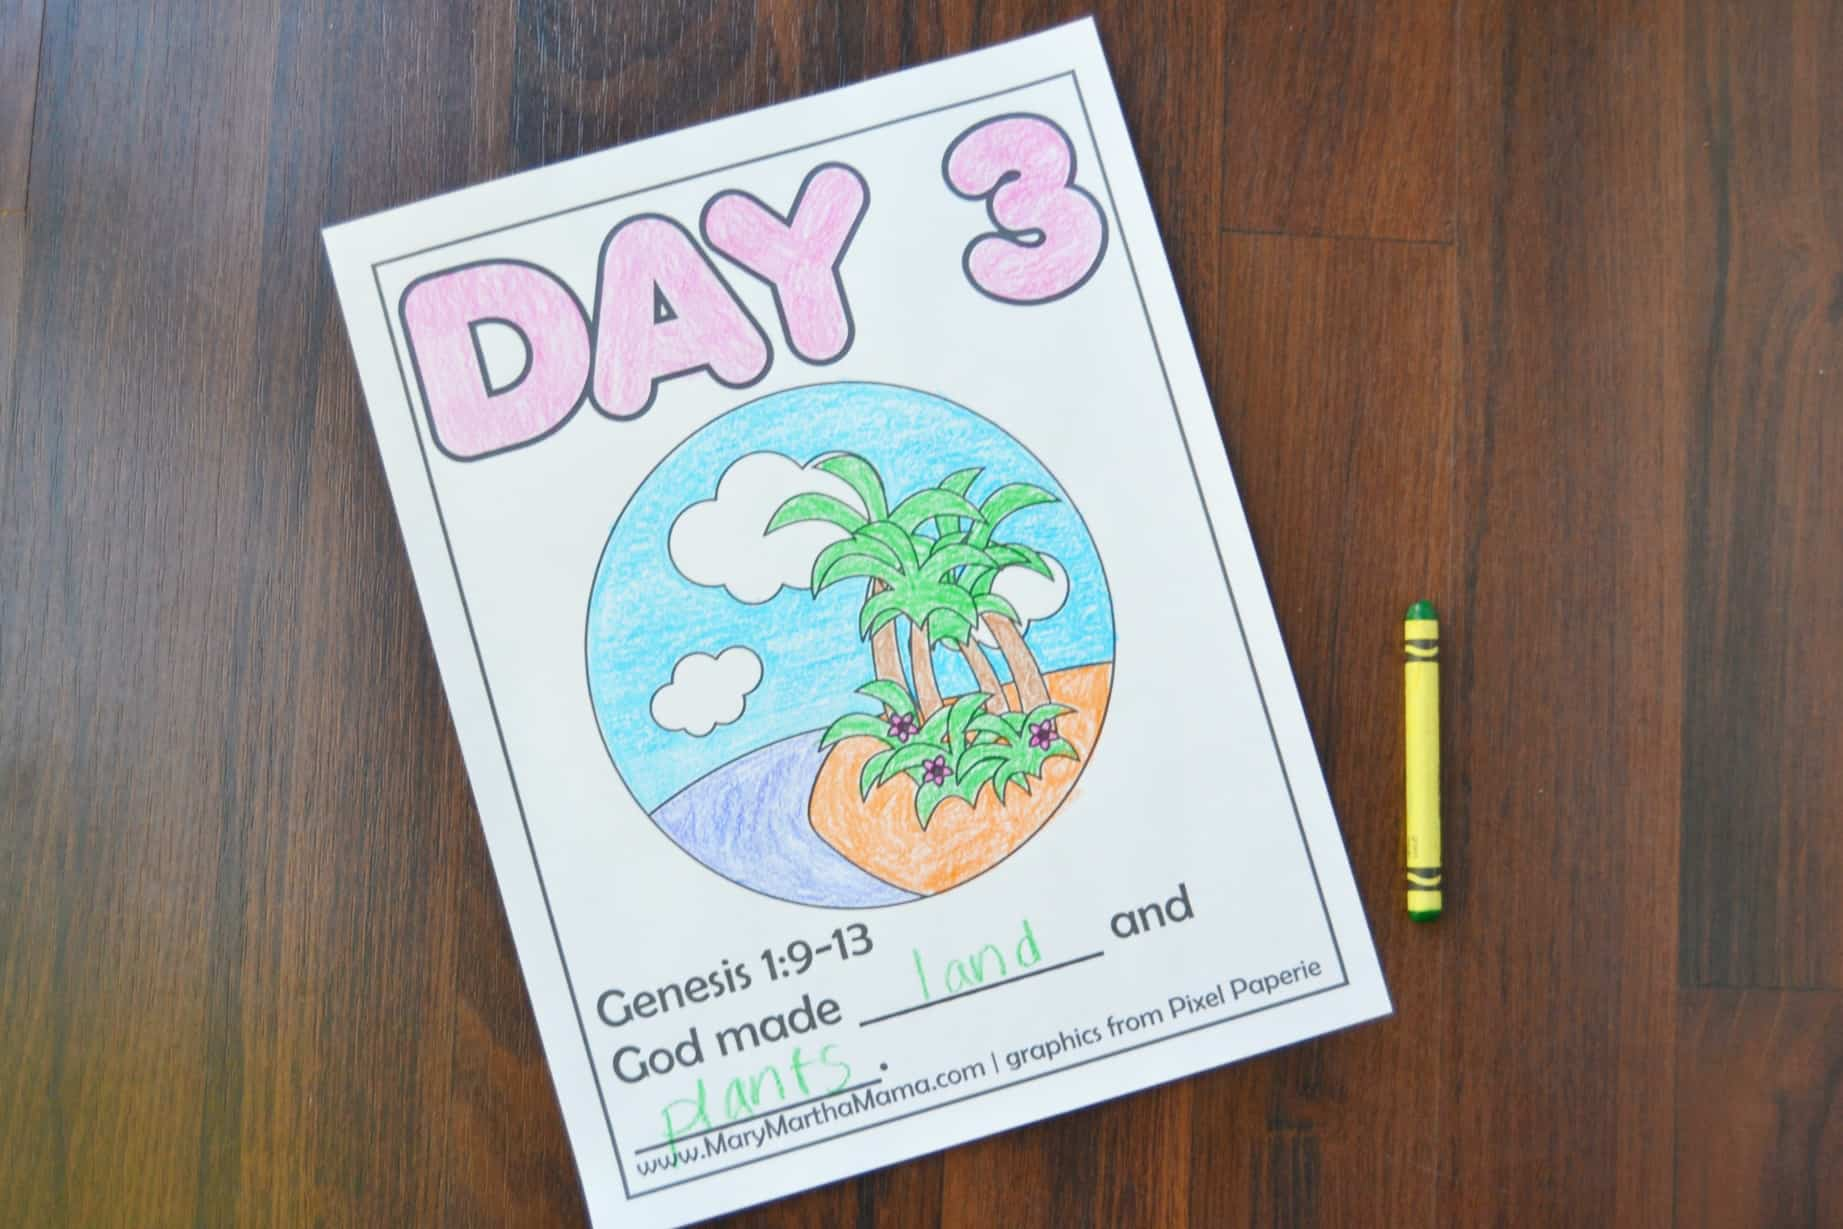 creation coloring pages day 3 page with Bible verse and picture to color